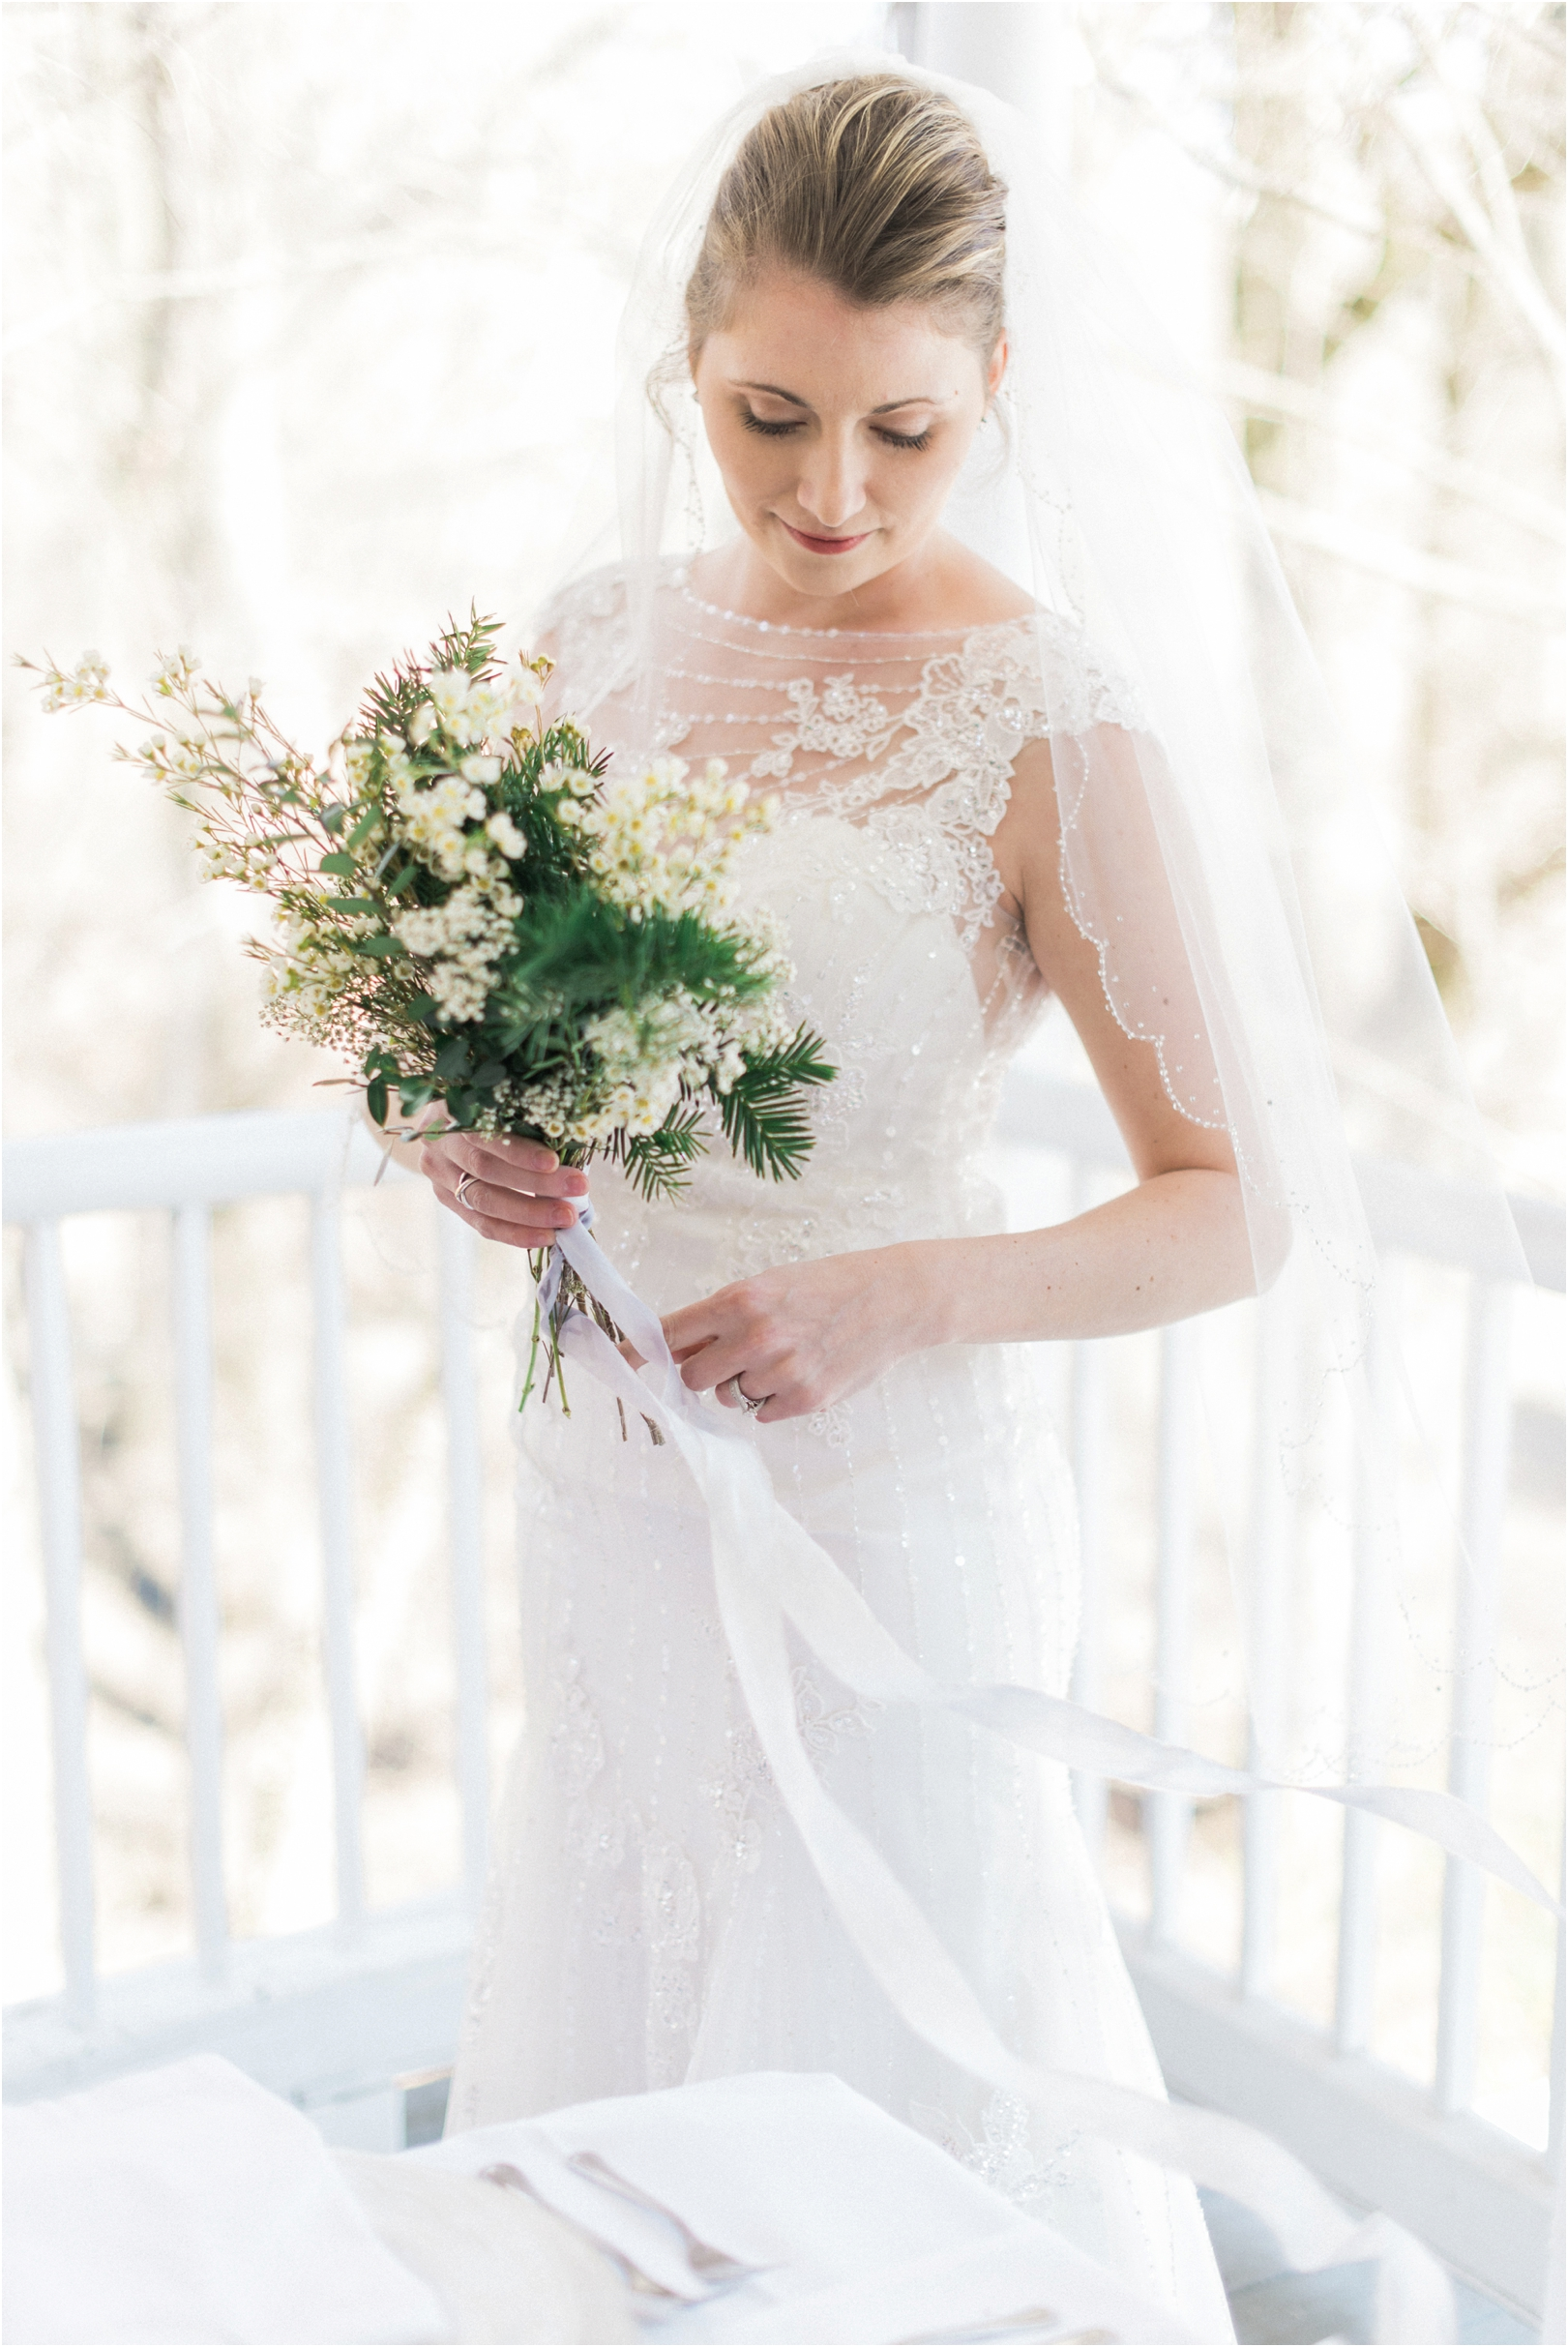 Elegant white wedding inspiration shoot joy michelle for All white wedding theme pictures